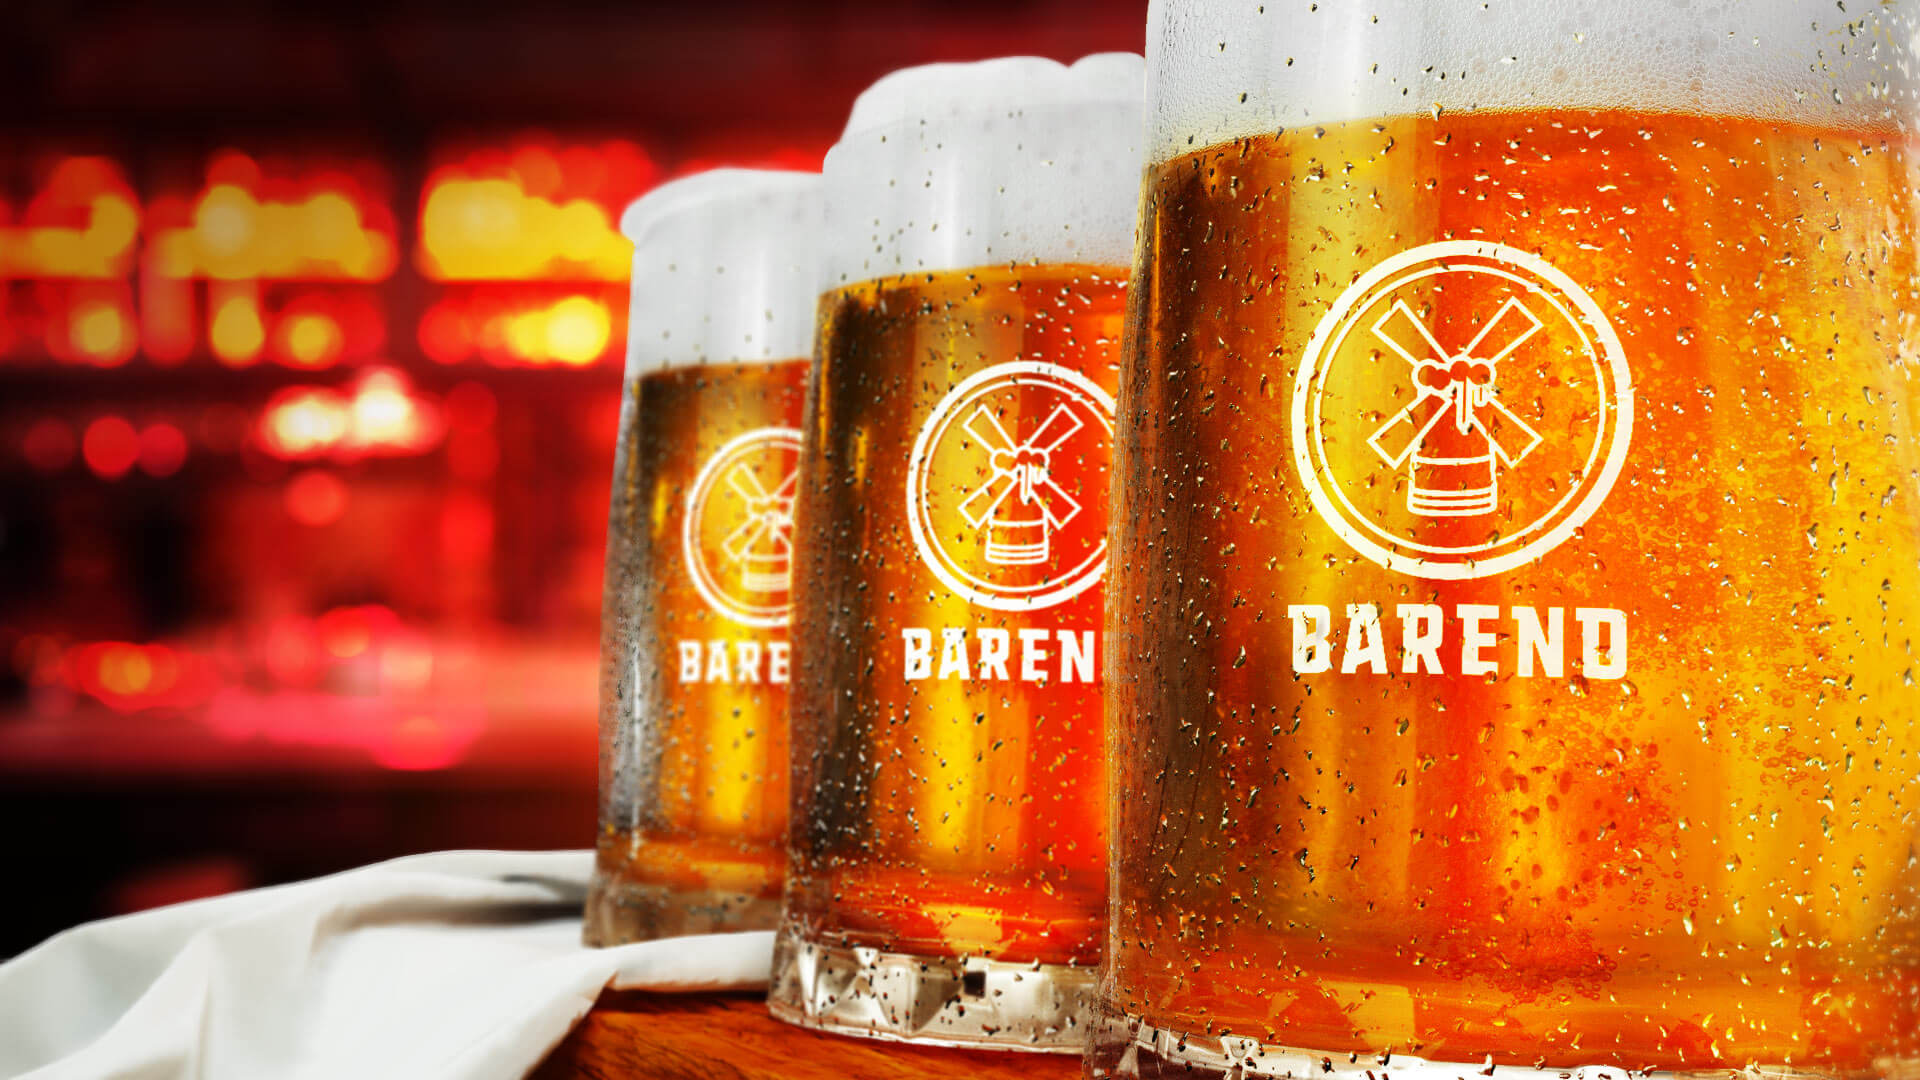 Barend - Craft Beer